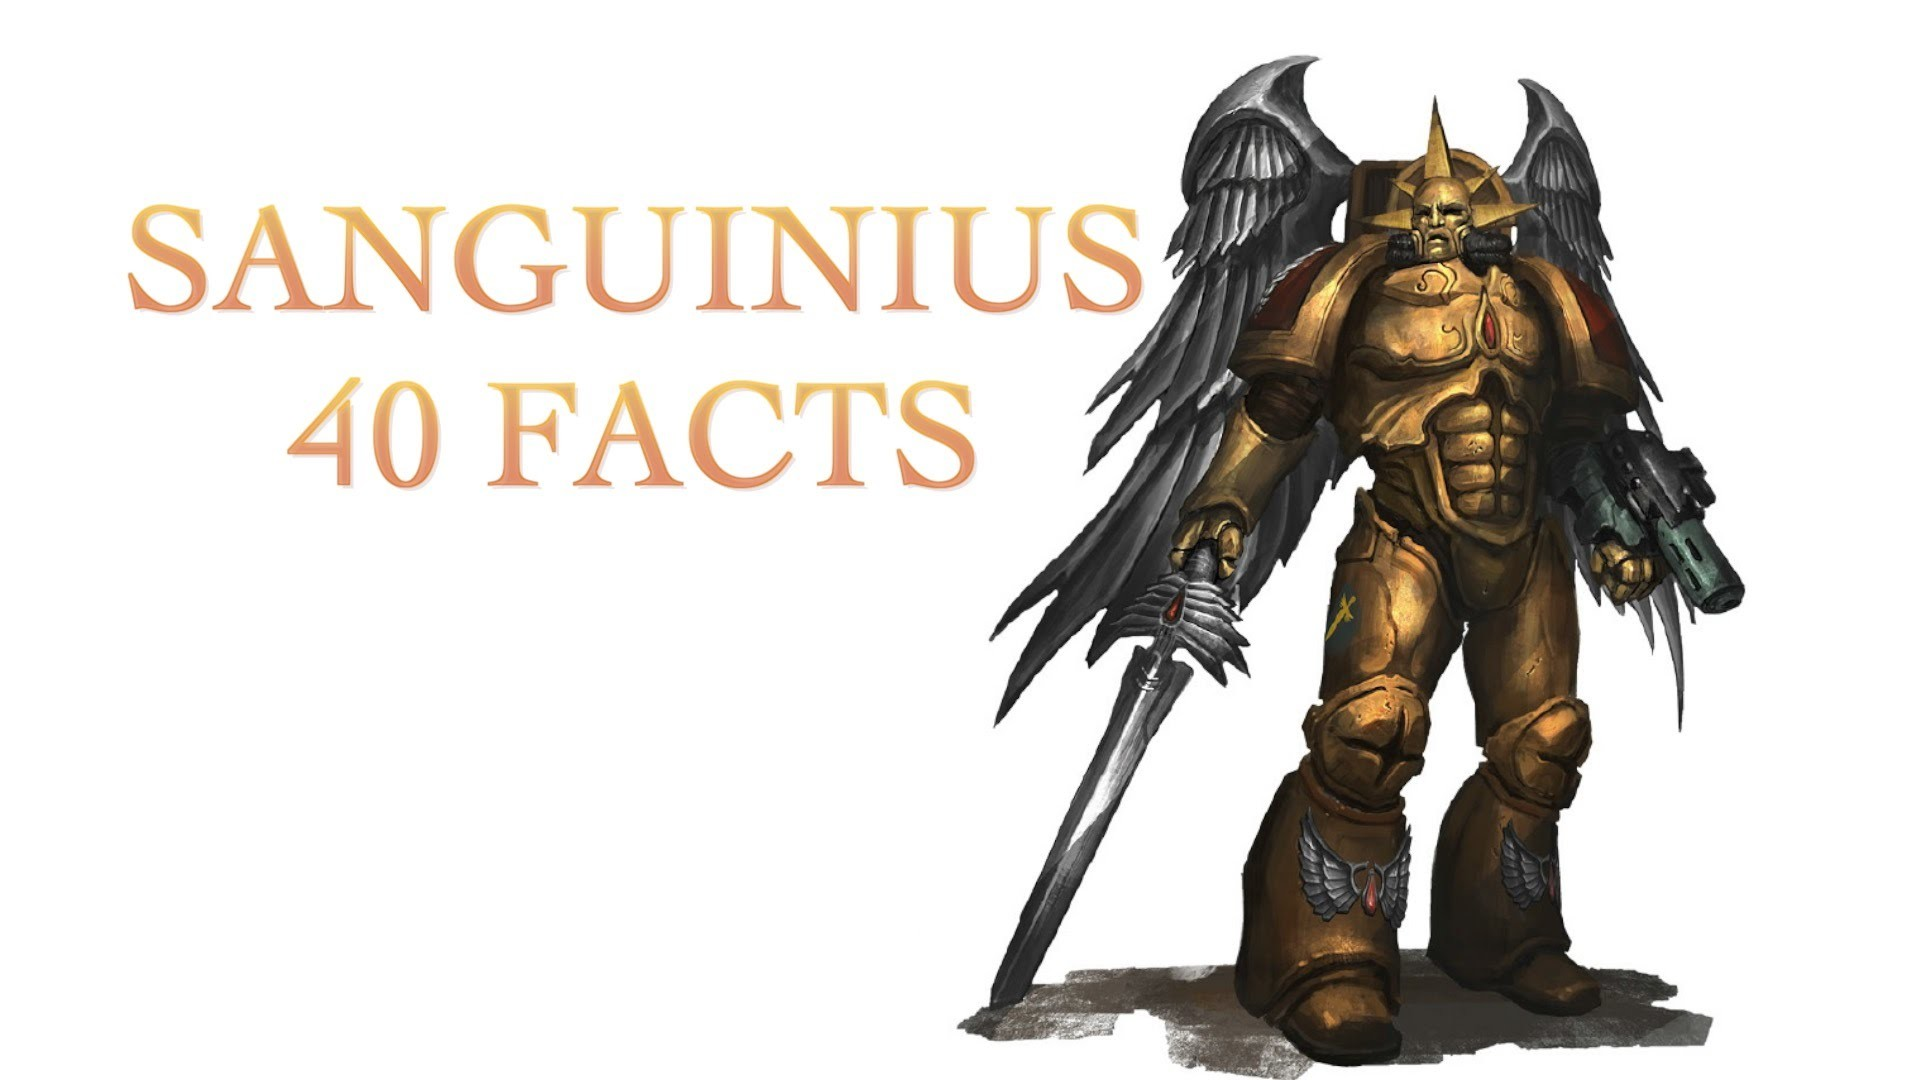 40 Facts and Lore about the Primarch Sanguinius Warhammer 40k, Blood Angels  – YouTube